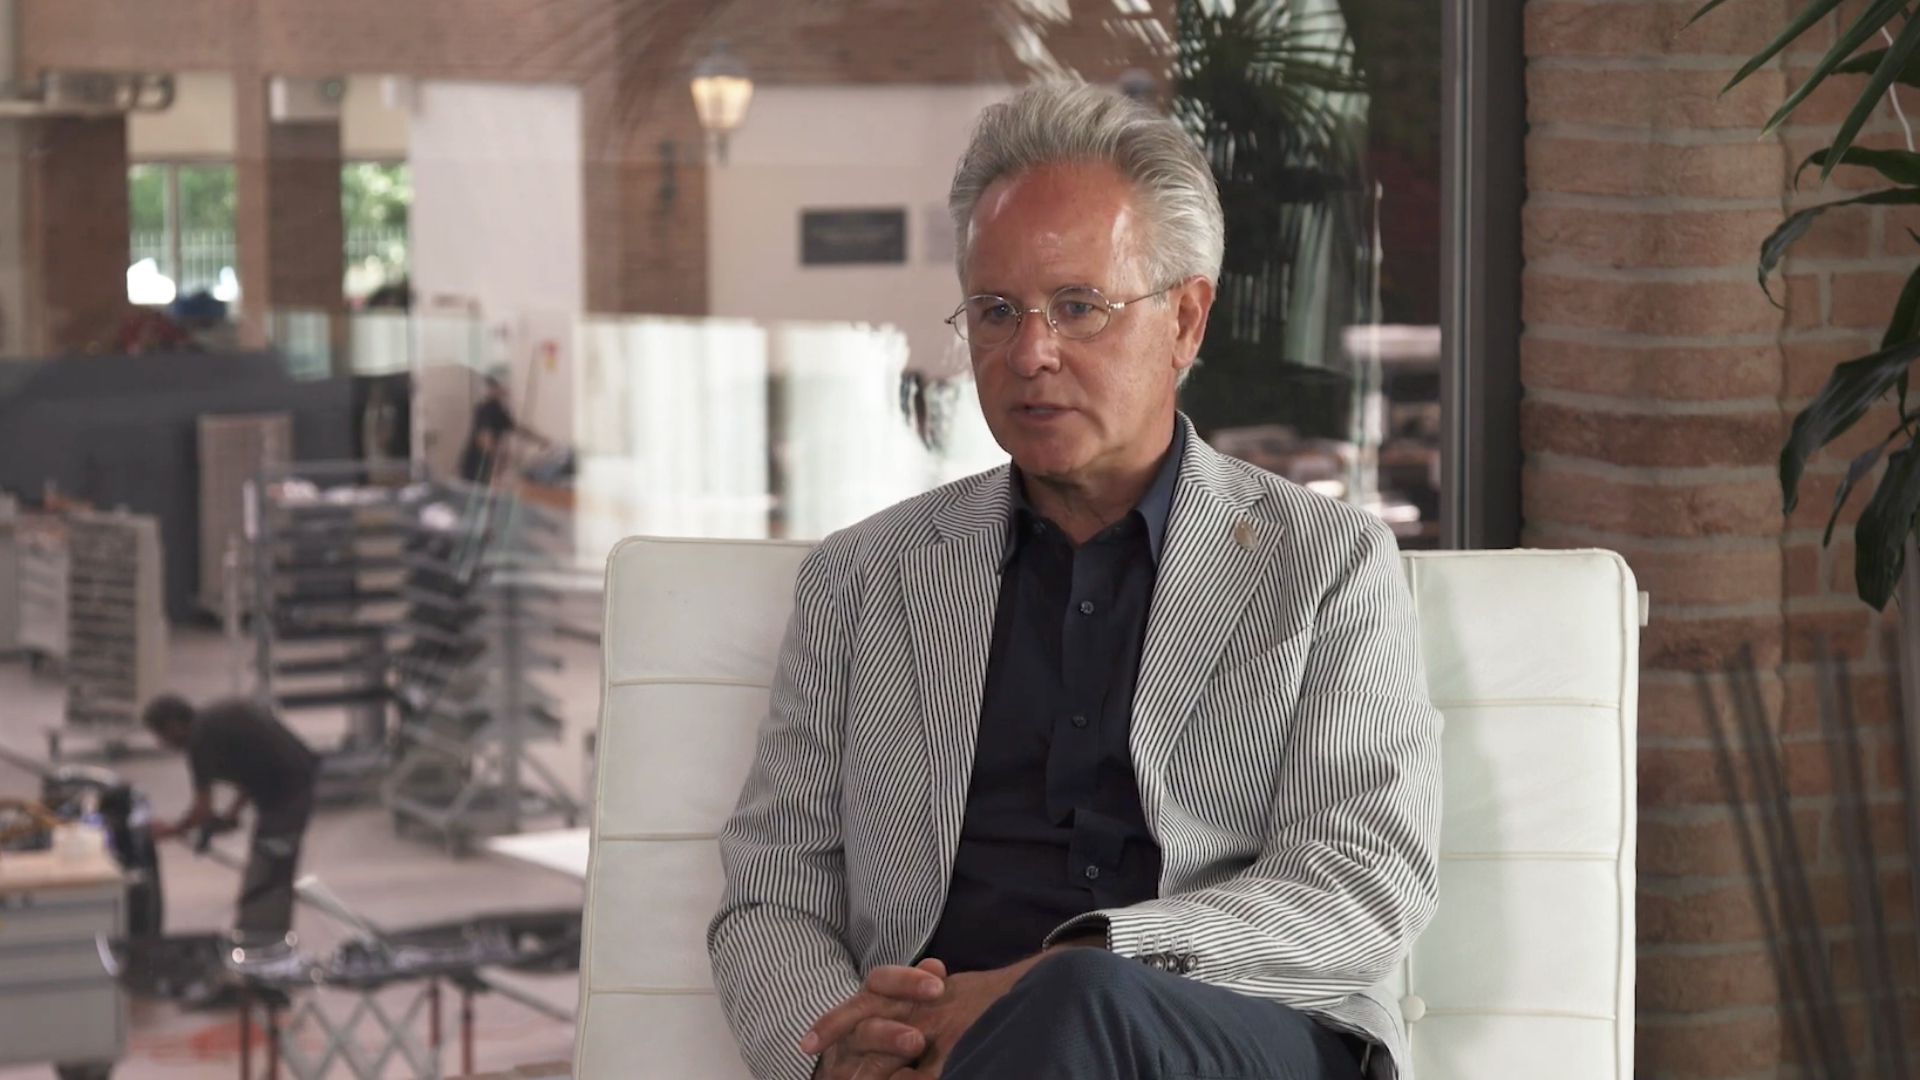 Interview with Horacio Pagani. From Las Pampas in Argentina to the Motor Valley.